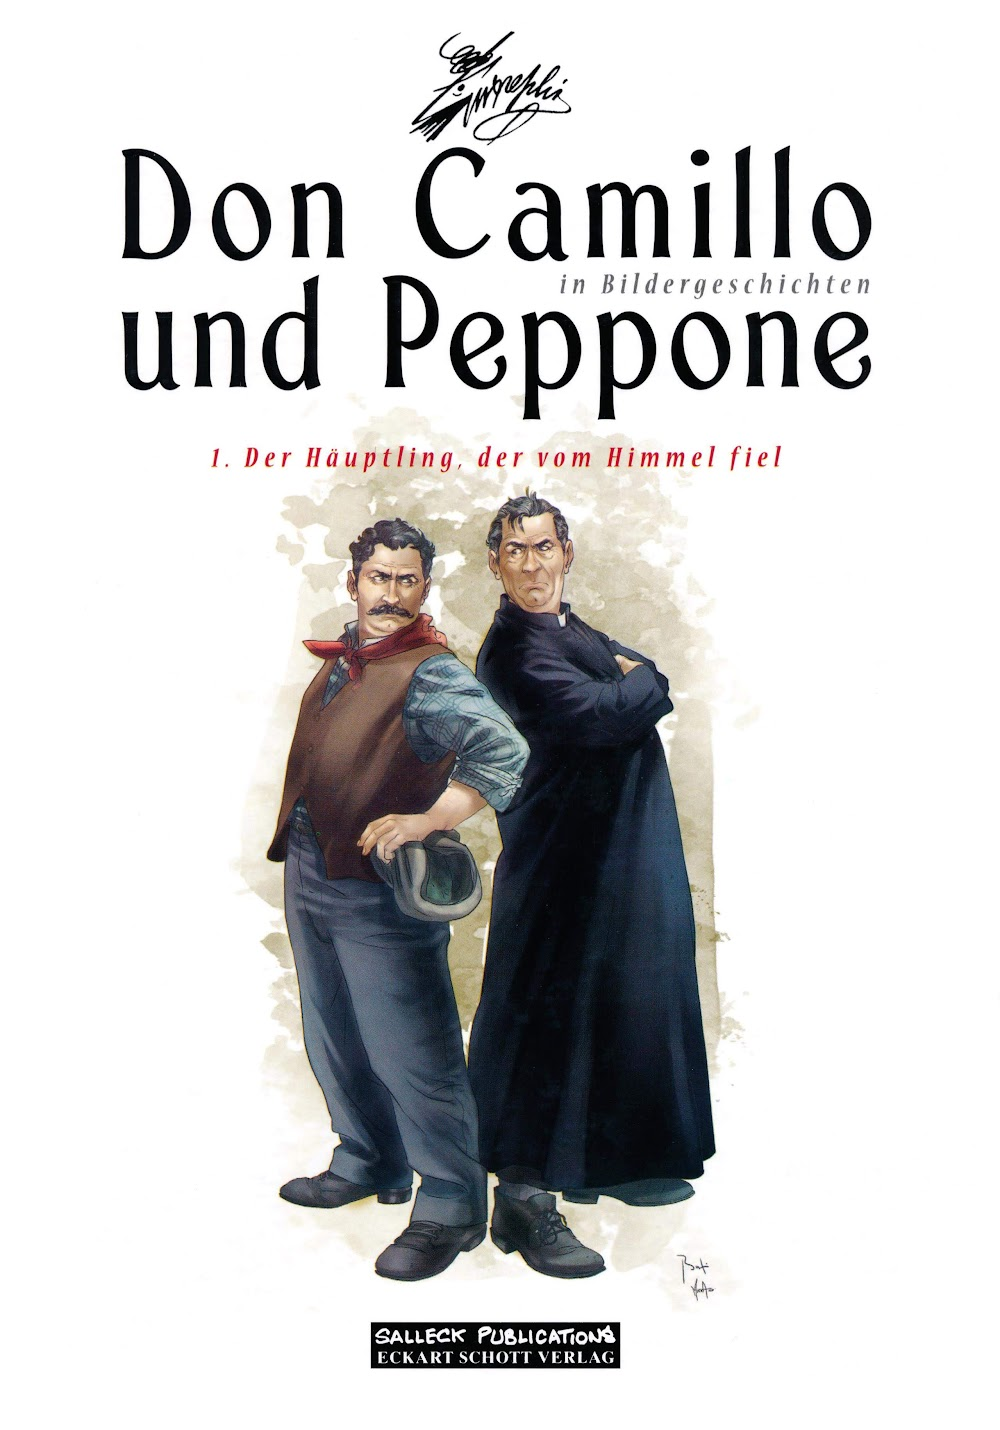 Don Camillo und Peppone in Bildergeschichten (2013) - komplett